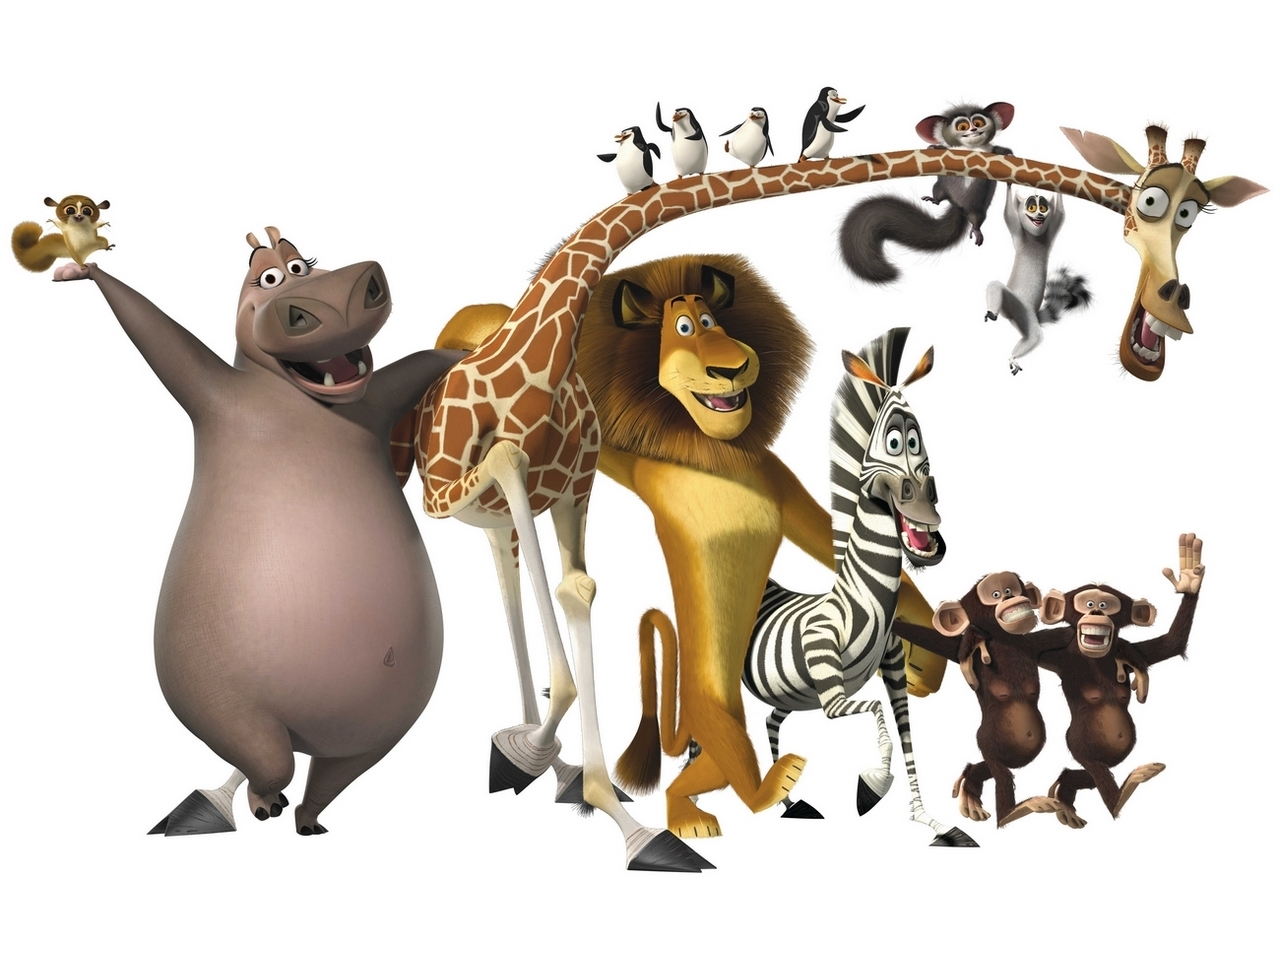 Madagascar wallpaper 1280x1024 48441 - Madagascar wallpaper ...